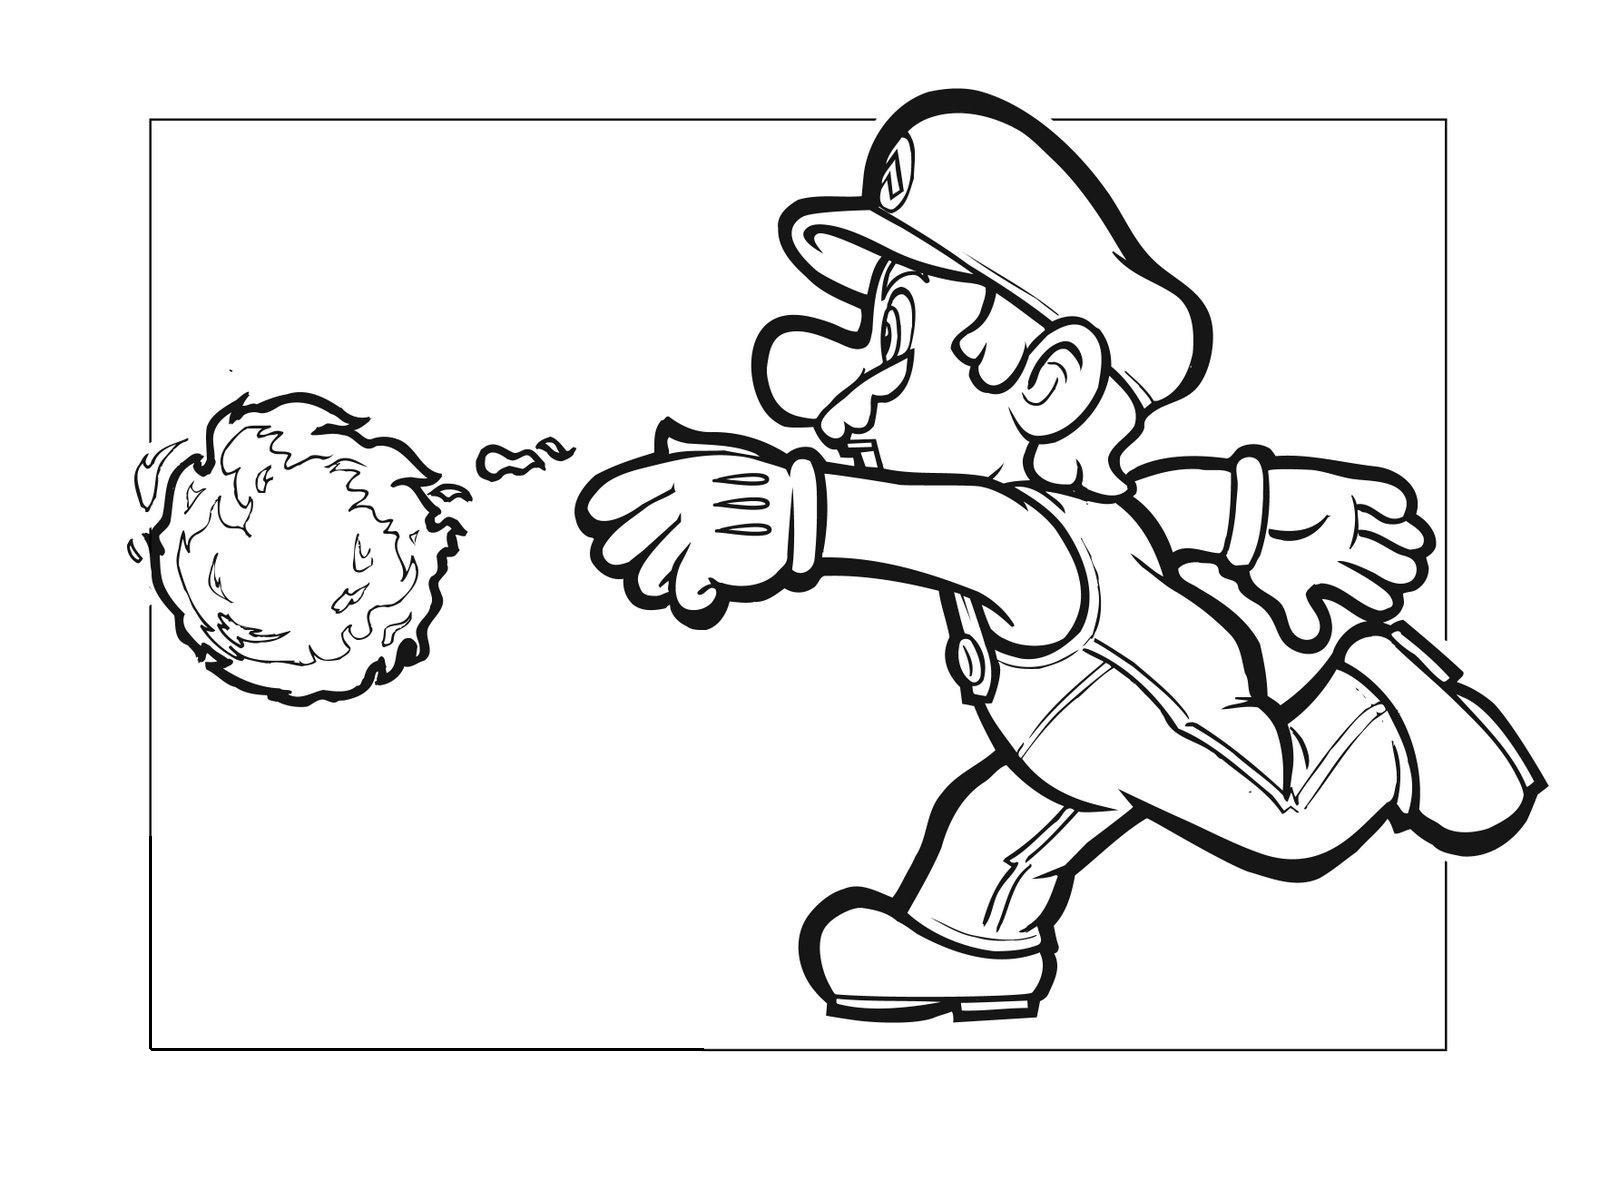 fireball mario coloring pages - photo#23